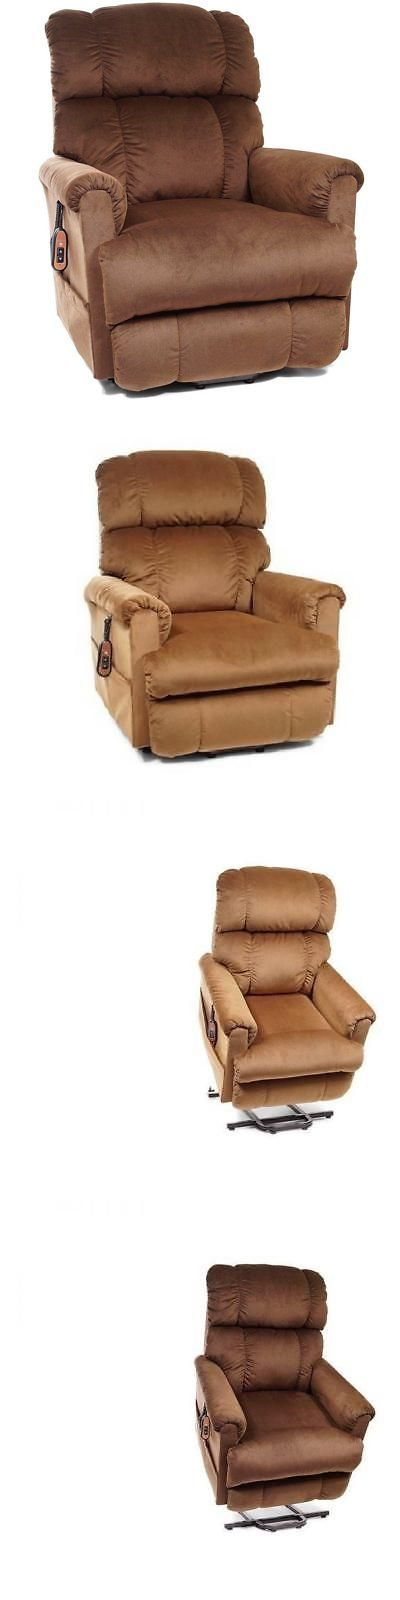 Electric Massage Chairs: Golden Tech Pr 931 Sma Space Saver Small Lift Chair